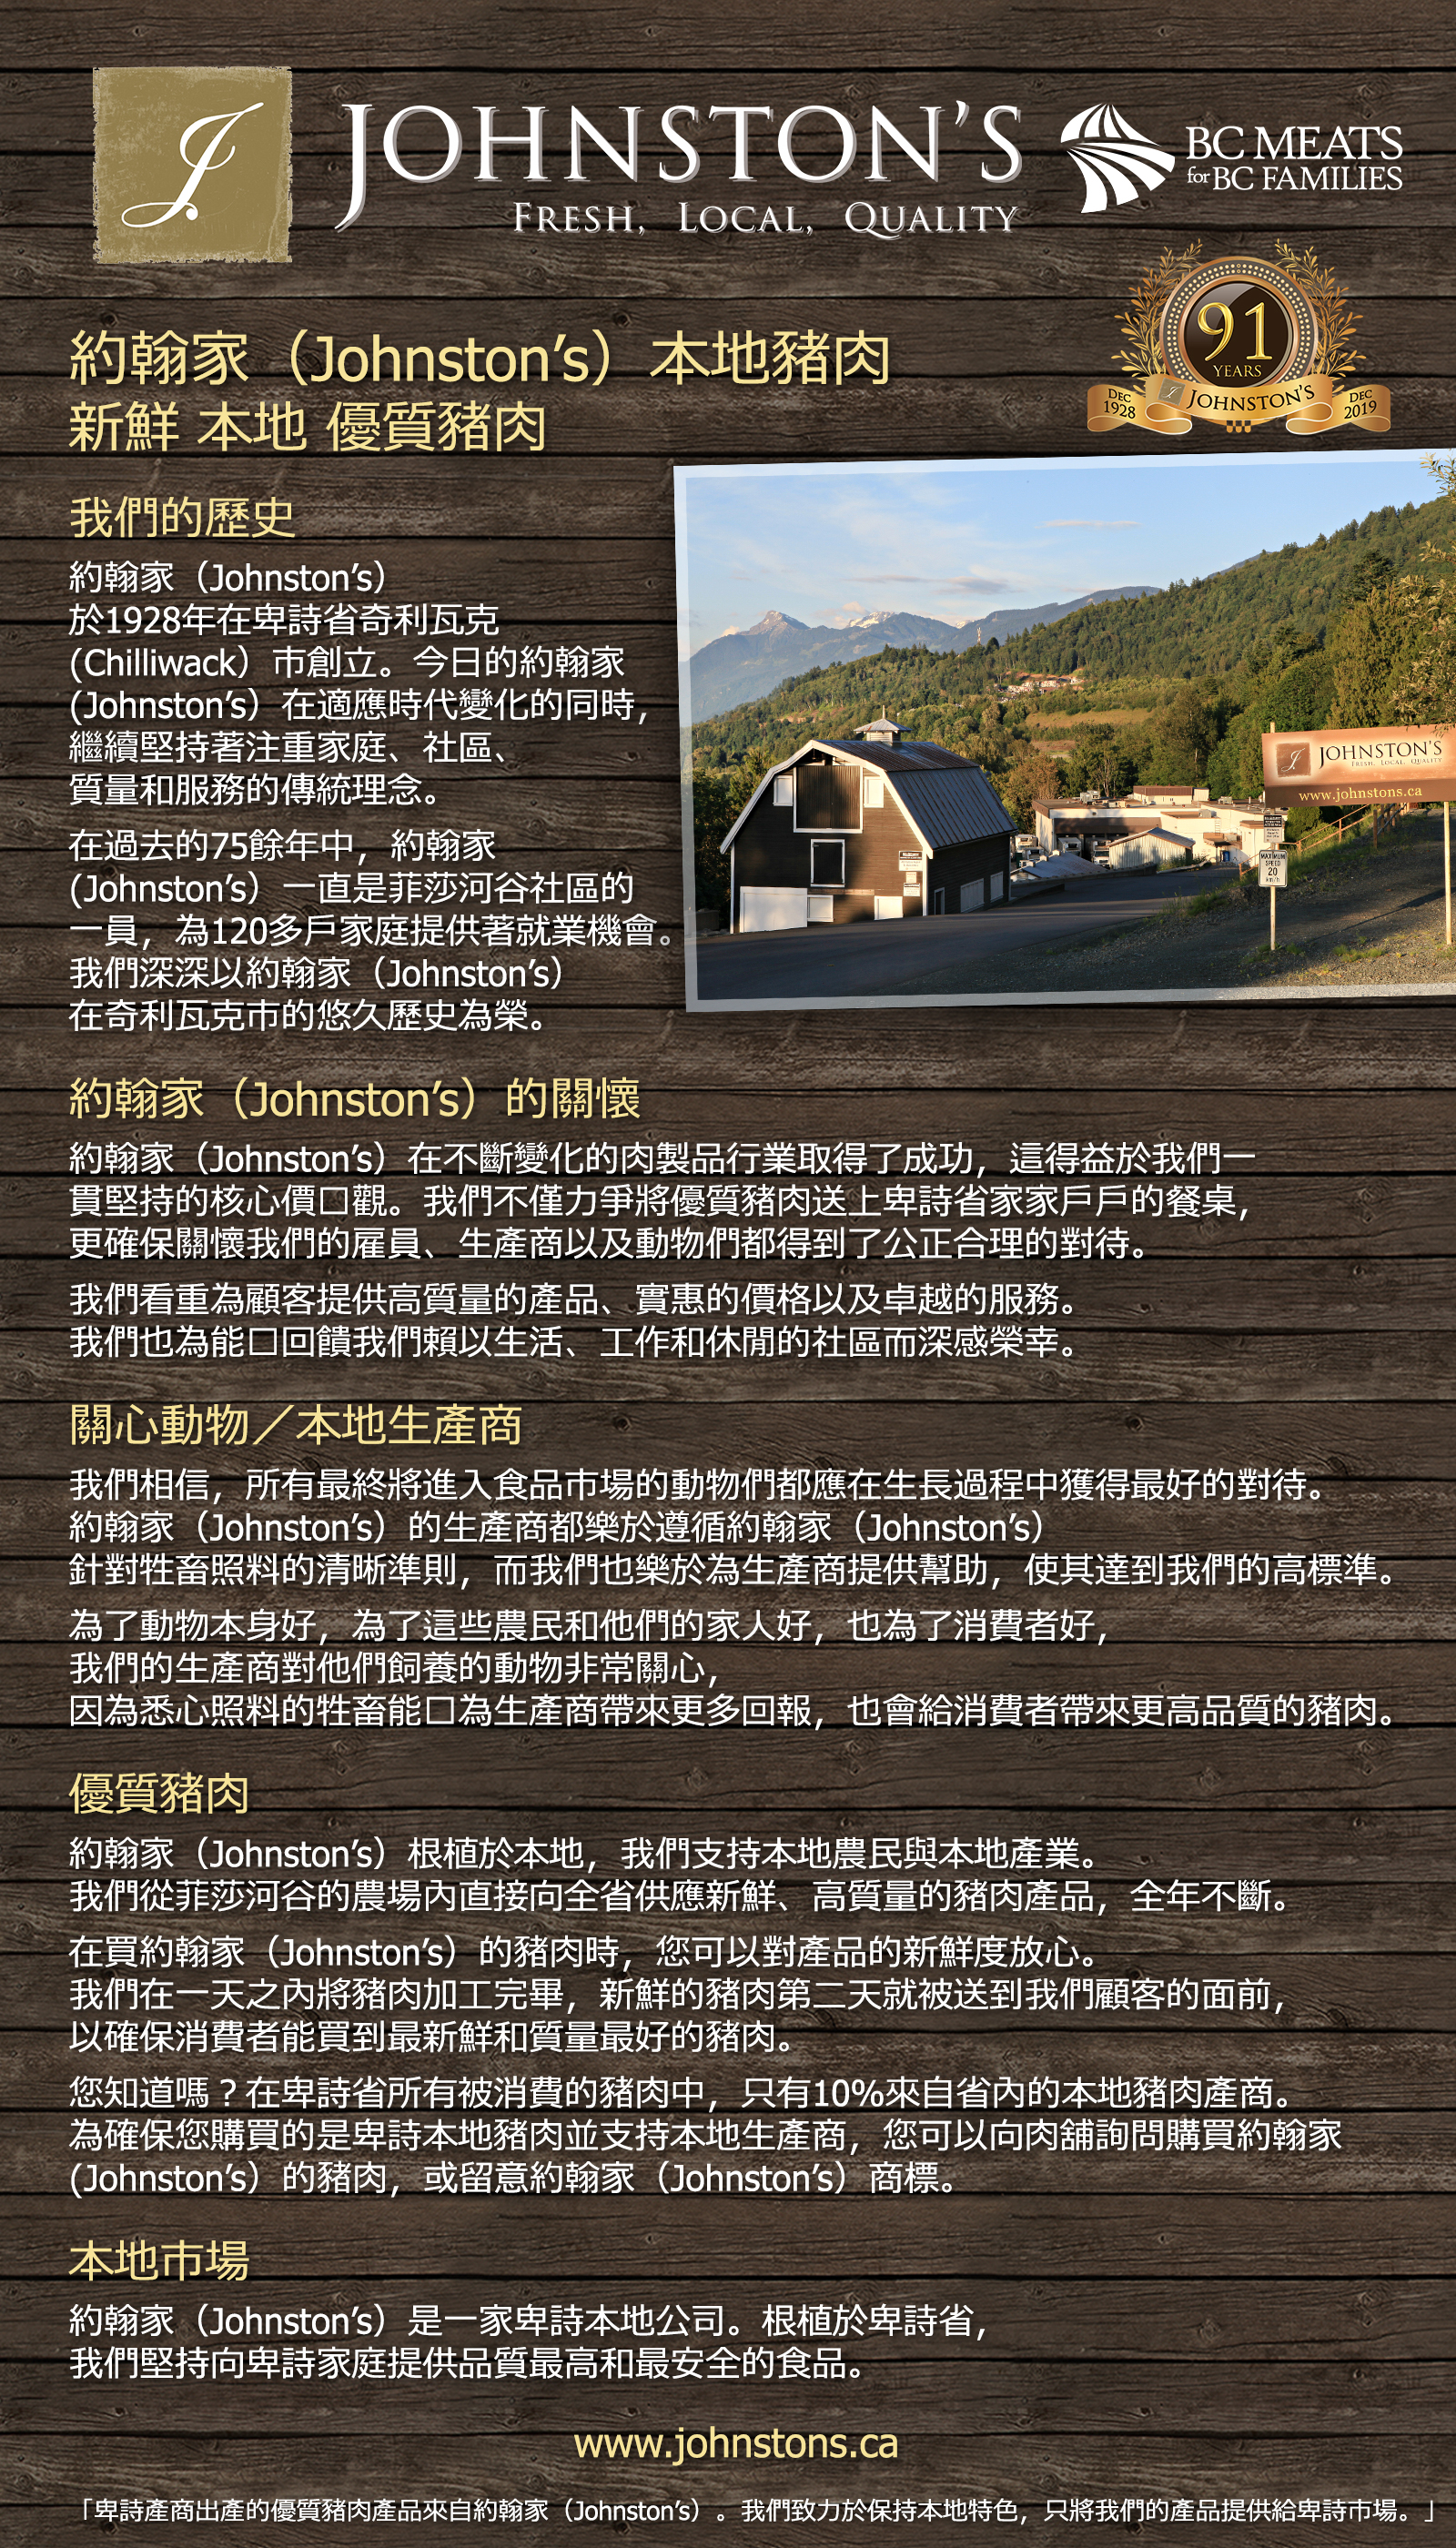 johnstons-story-chinese_legal2019